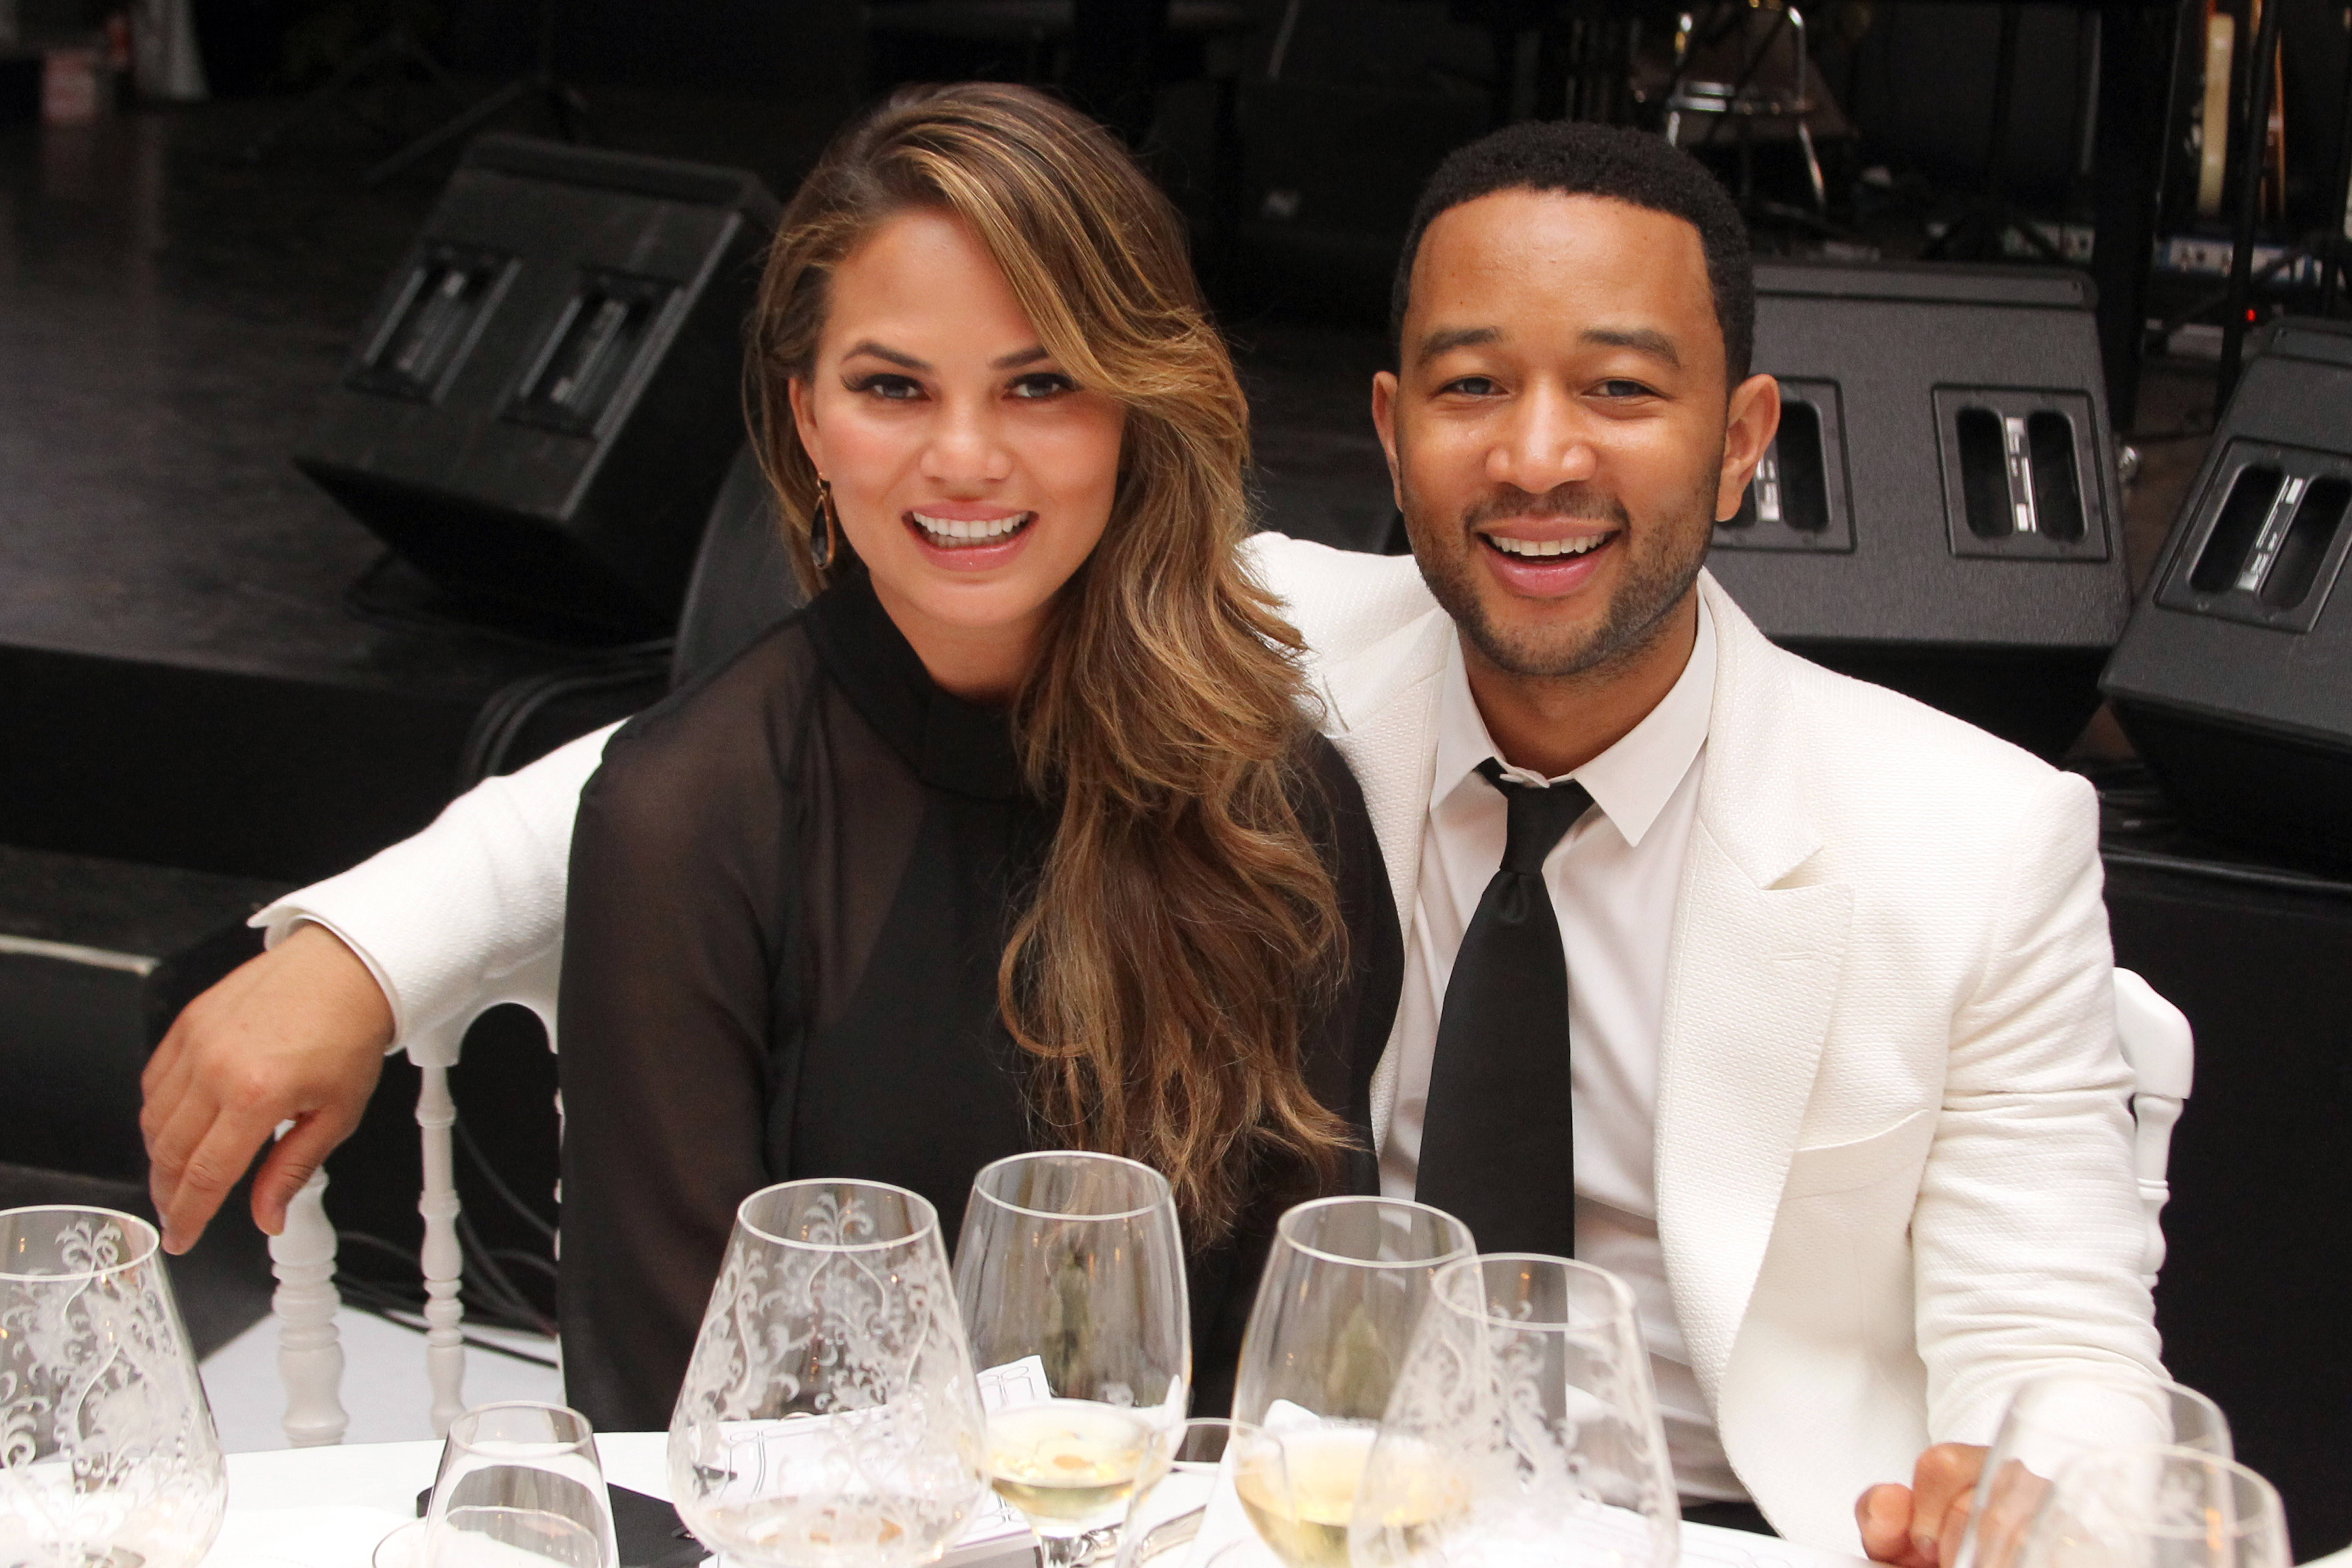 Chrissy Teigen and John Legend's date night had a special guest: Chrissy's mom